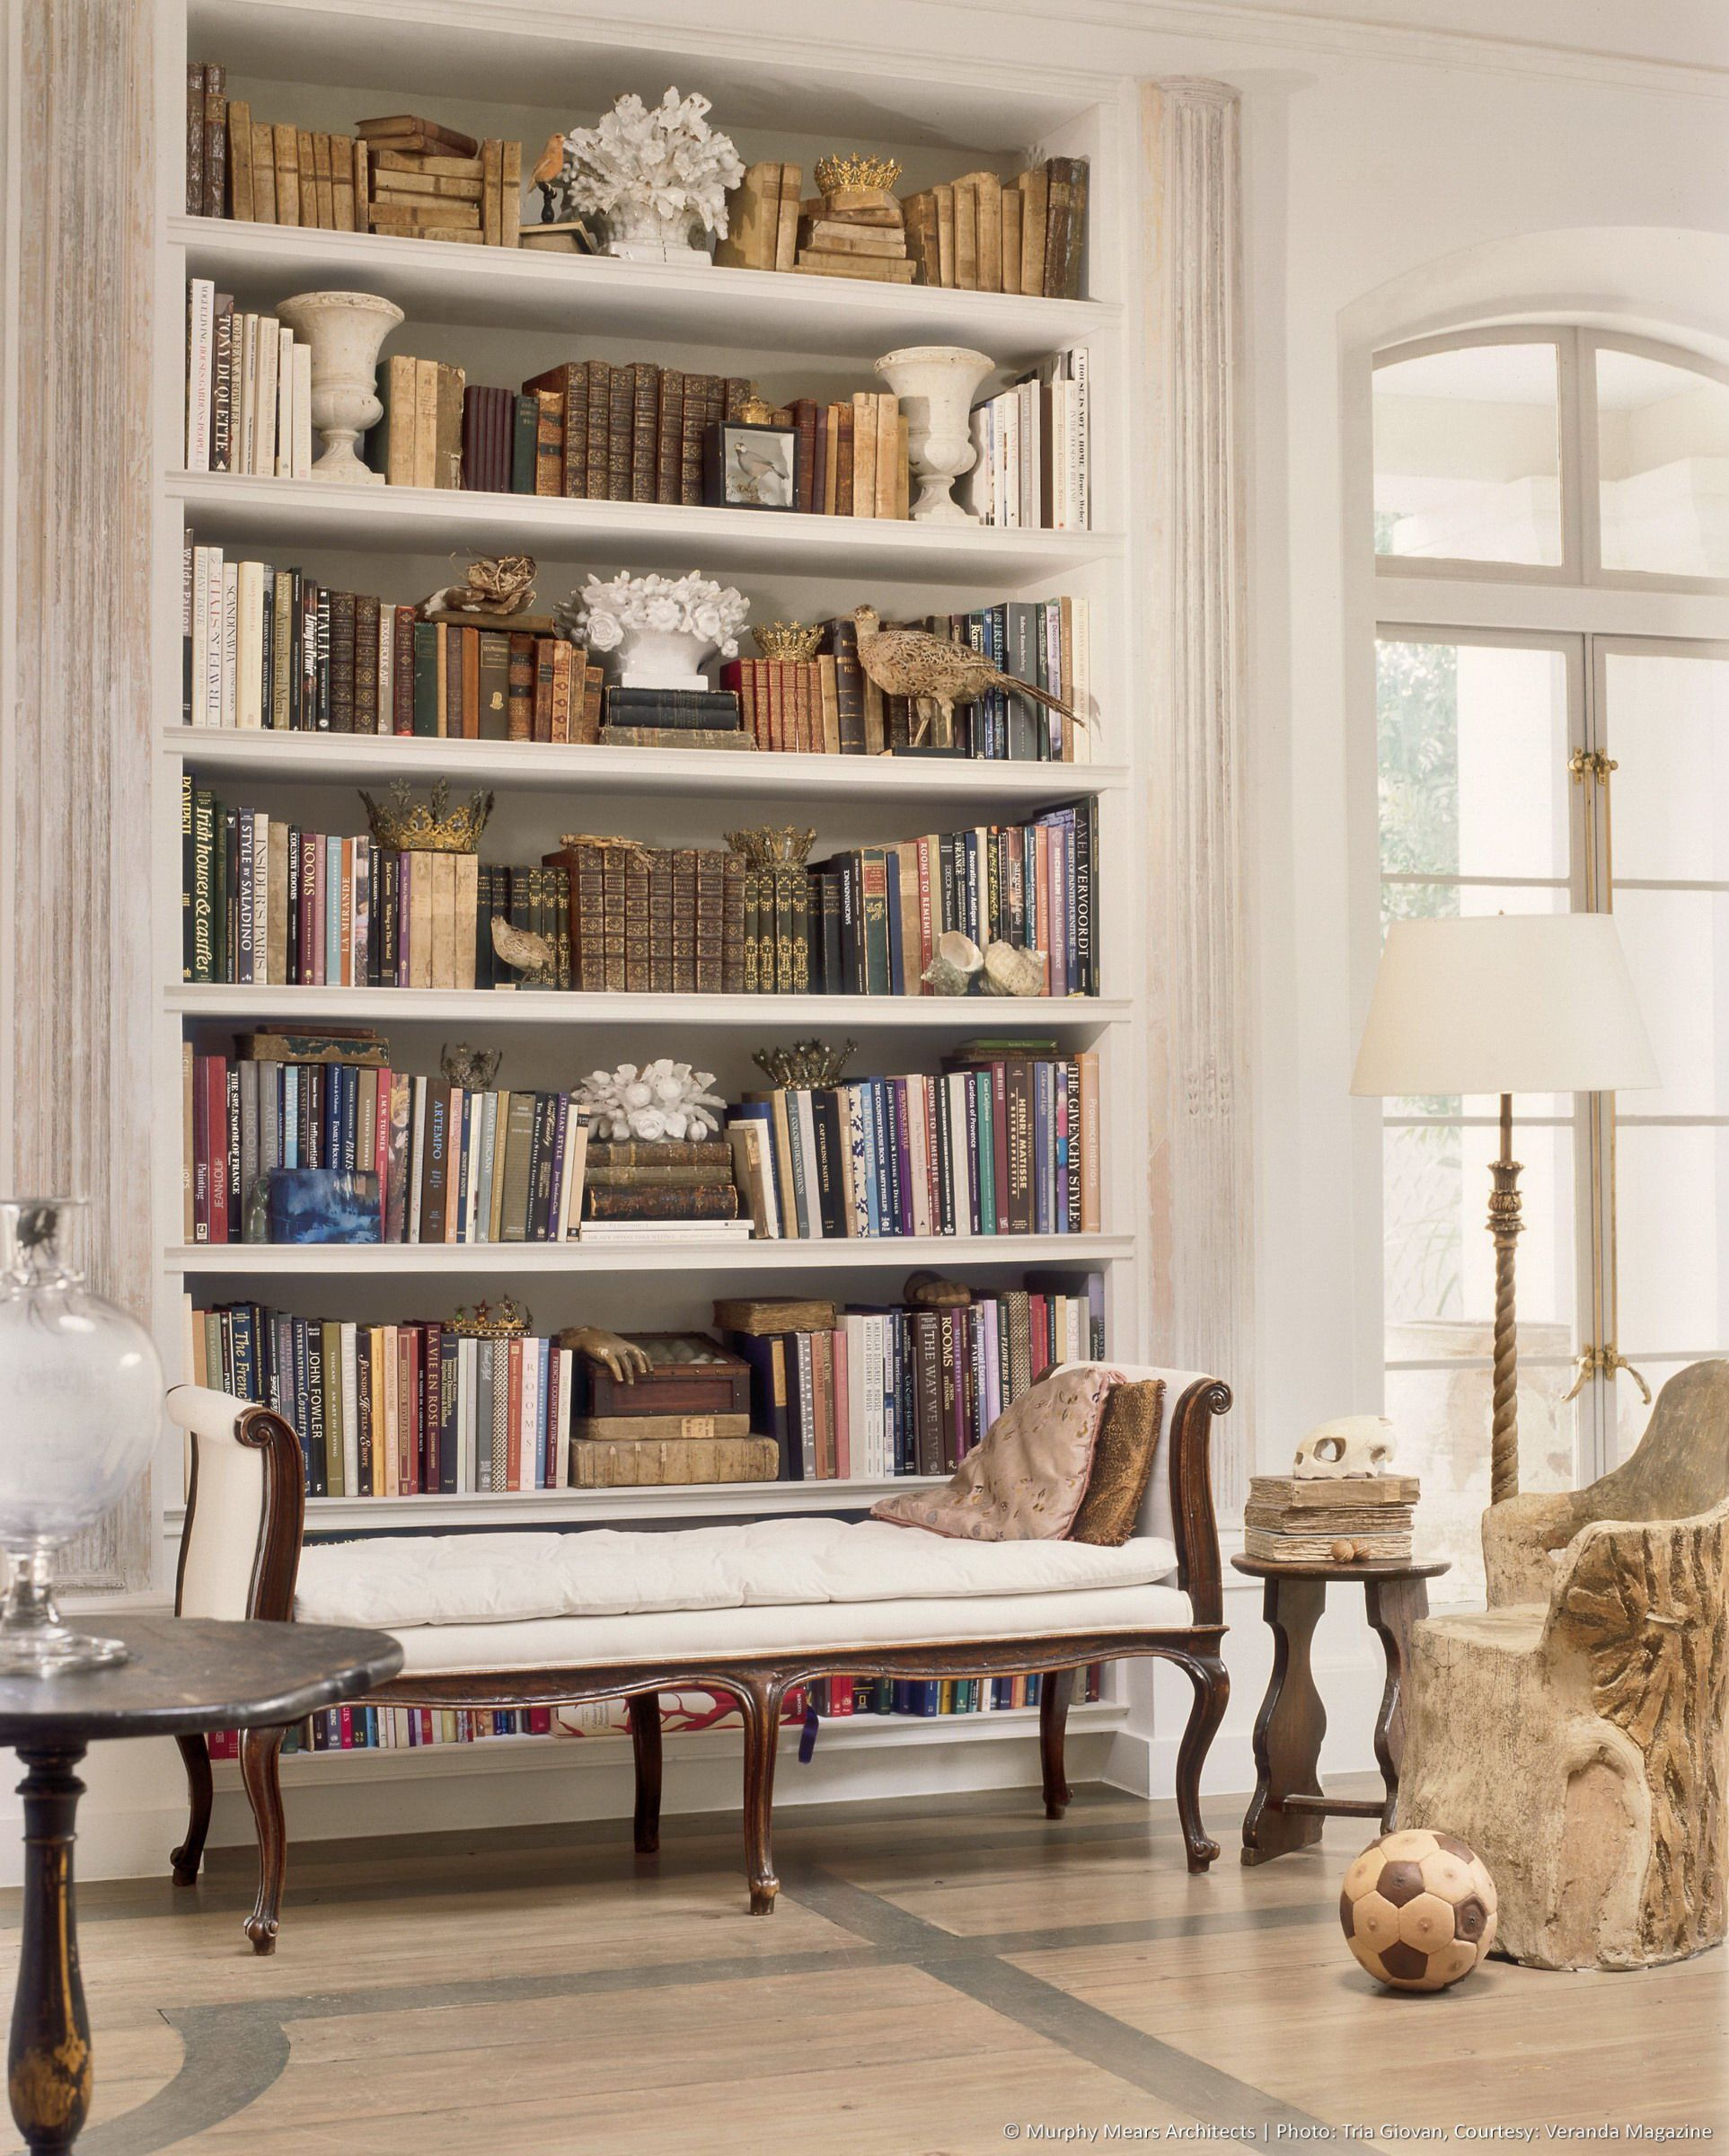 Exceptional Beautifully Styled Bookcase   Neoclassical Home In Houston   Via  MurphyMears.com